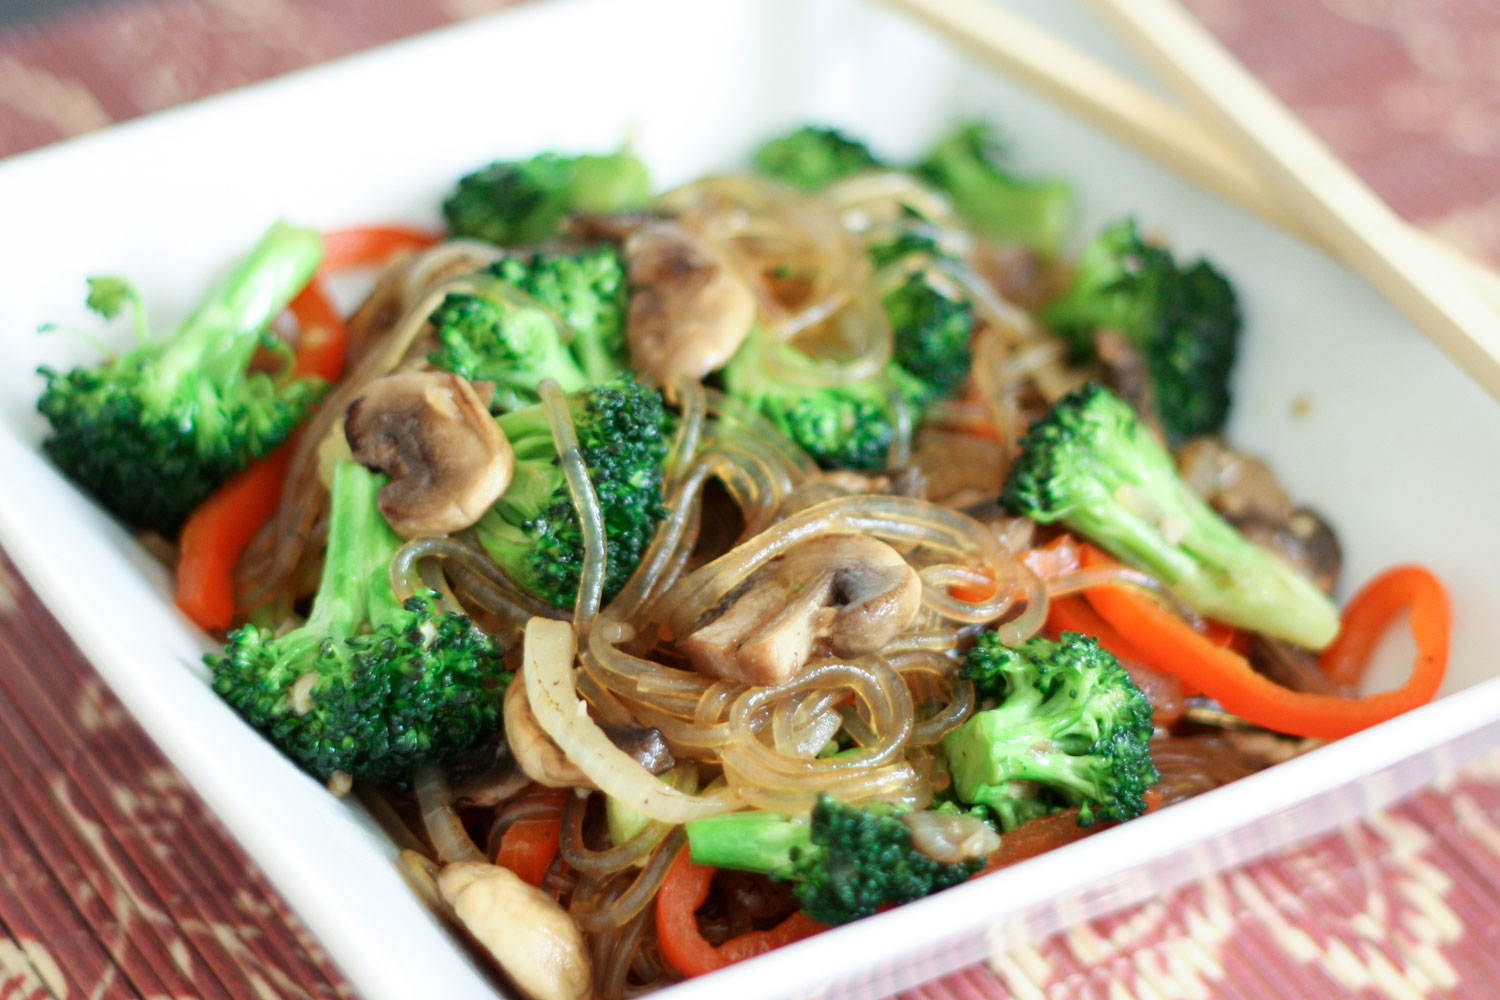 Korean Jap Chae {or Chop Chae} recipe with Broccoli and Mushrooms